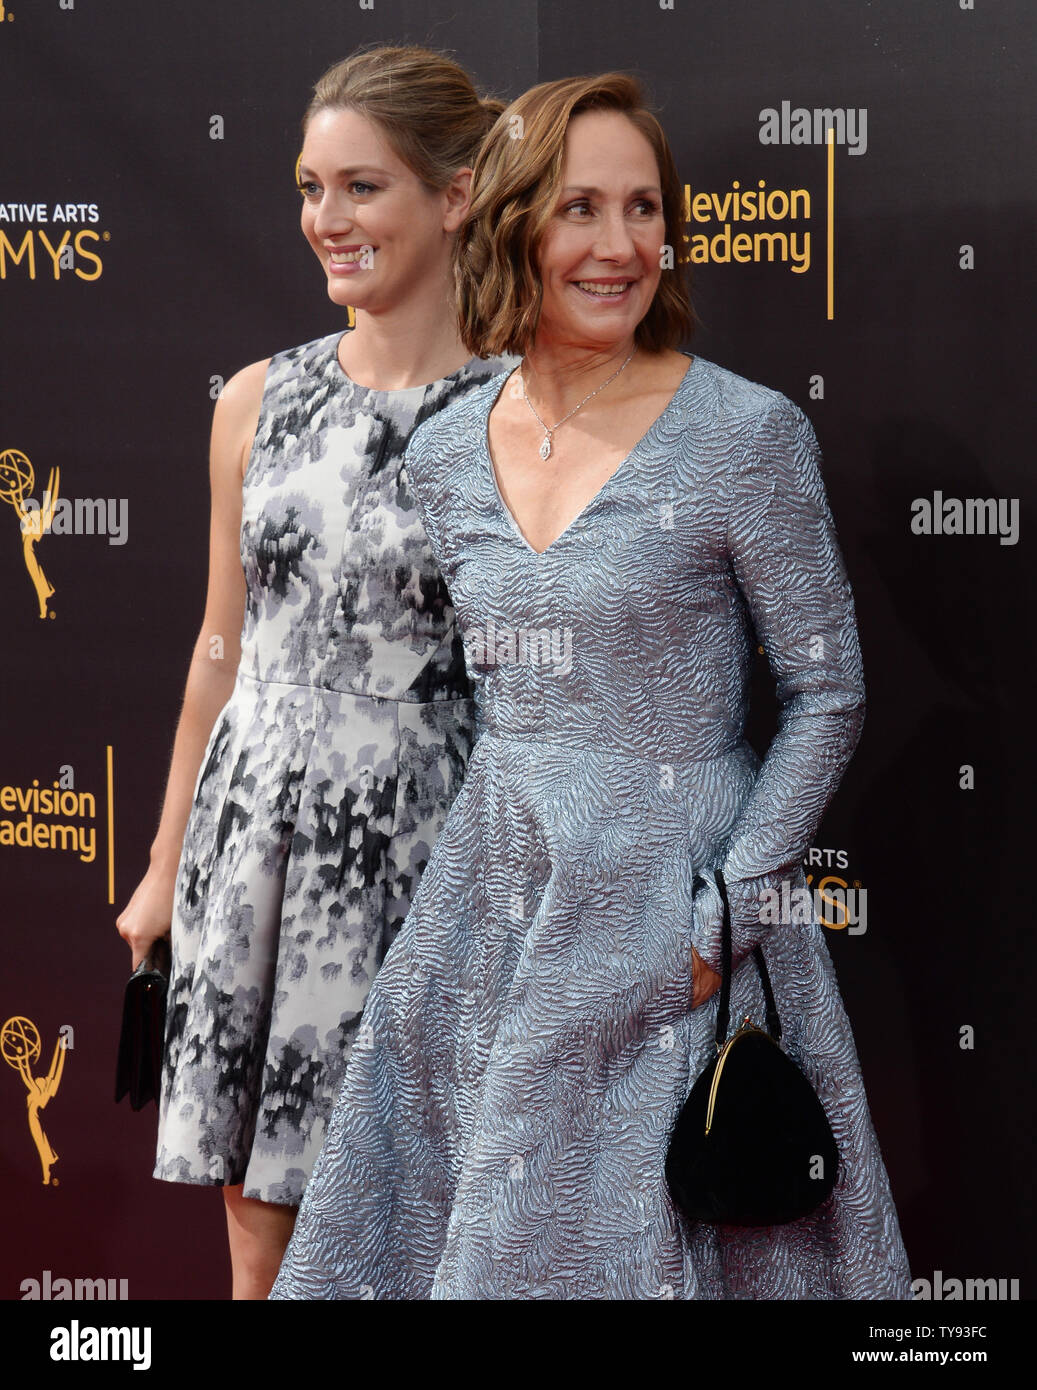 Actresses Zoe Perry And Laurie Metcalf Attend The Creative